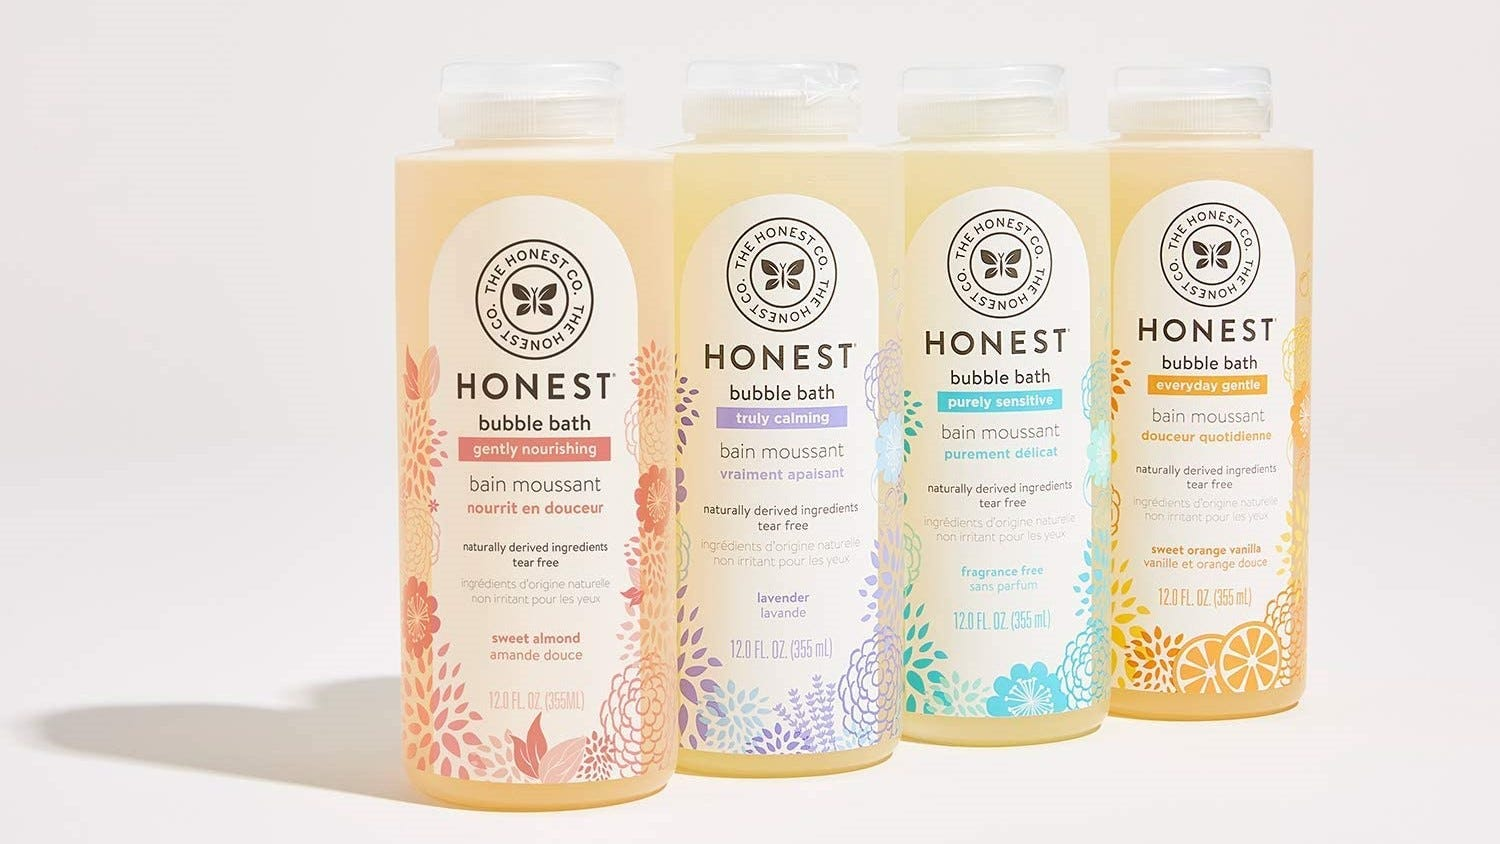 A variety of bubble baths from The Honest Co.